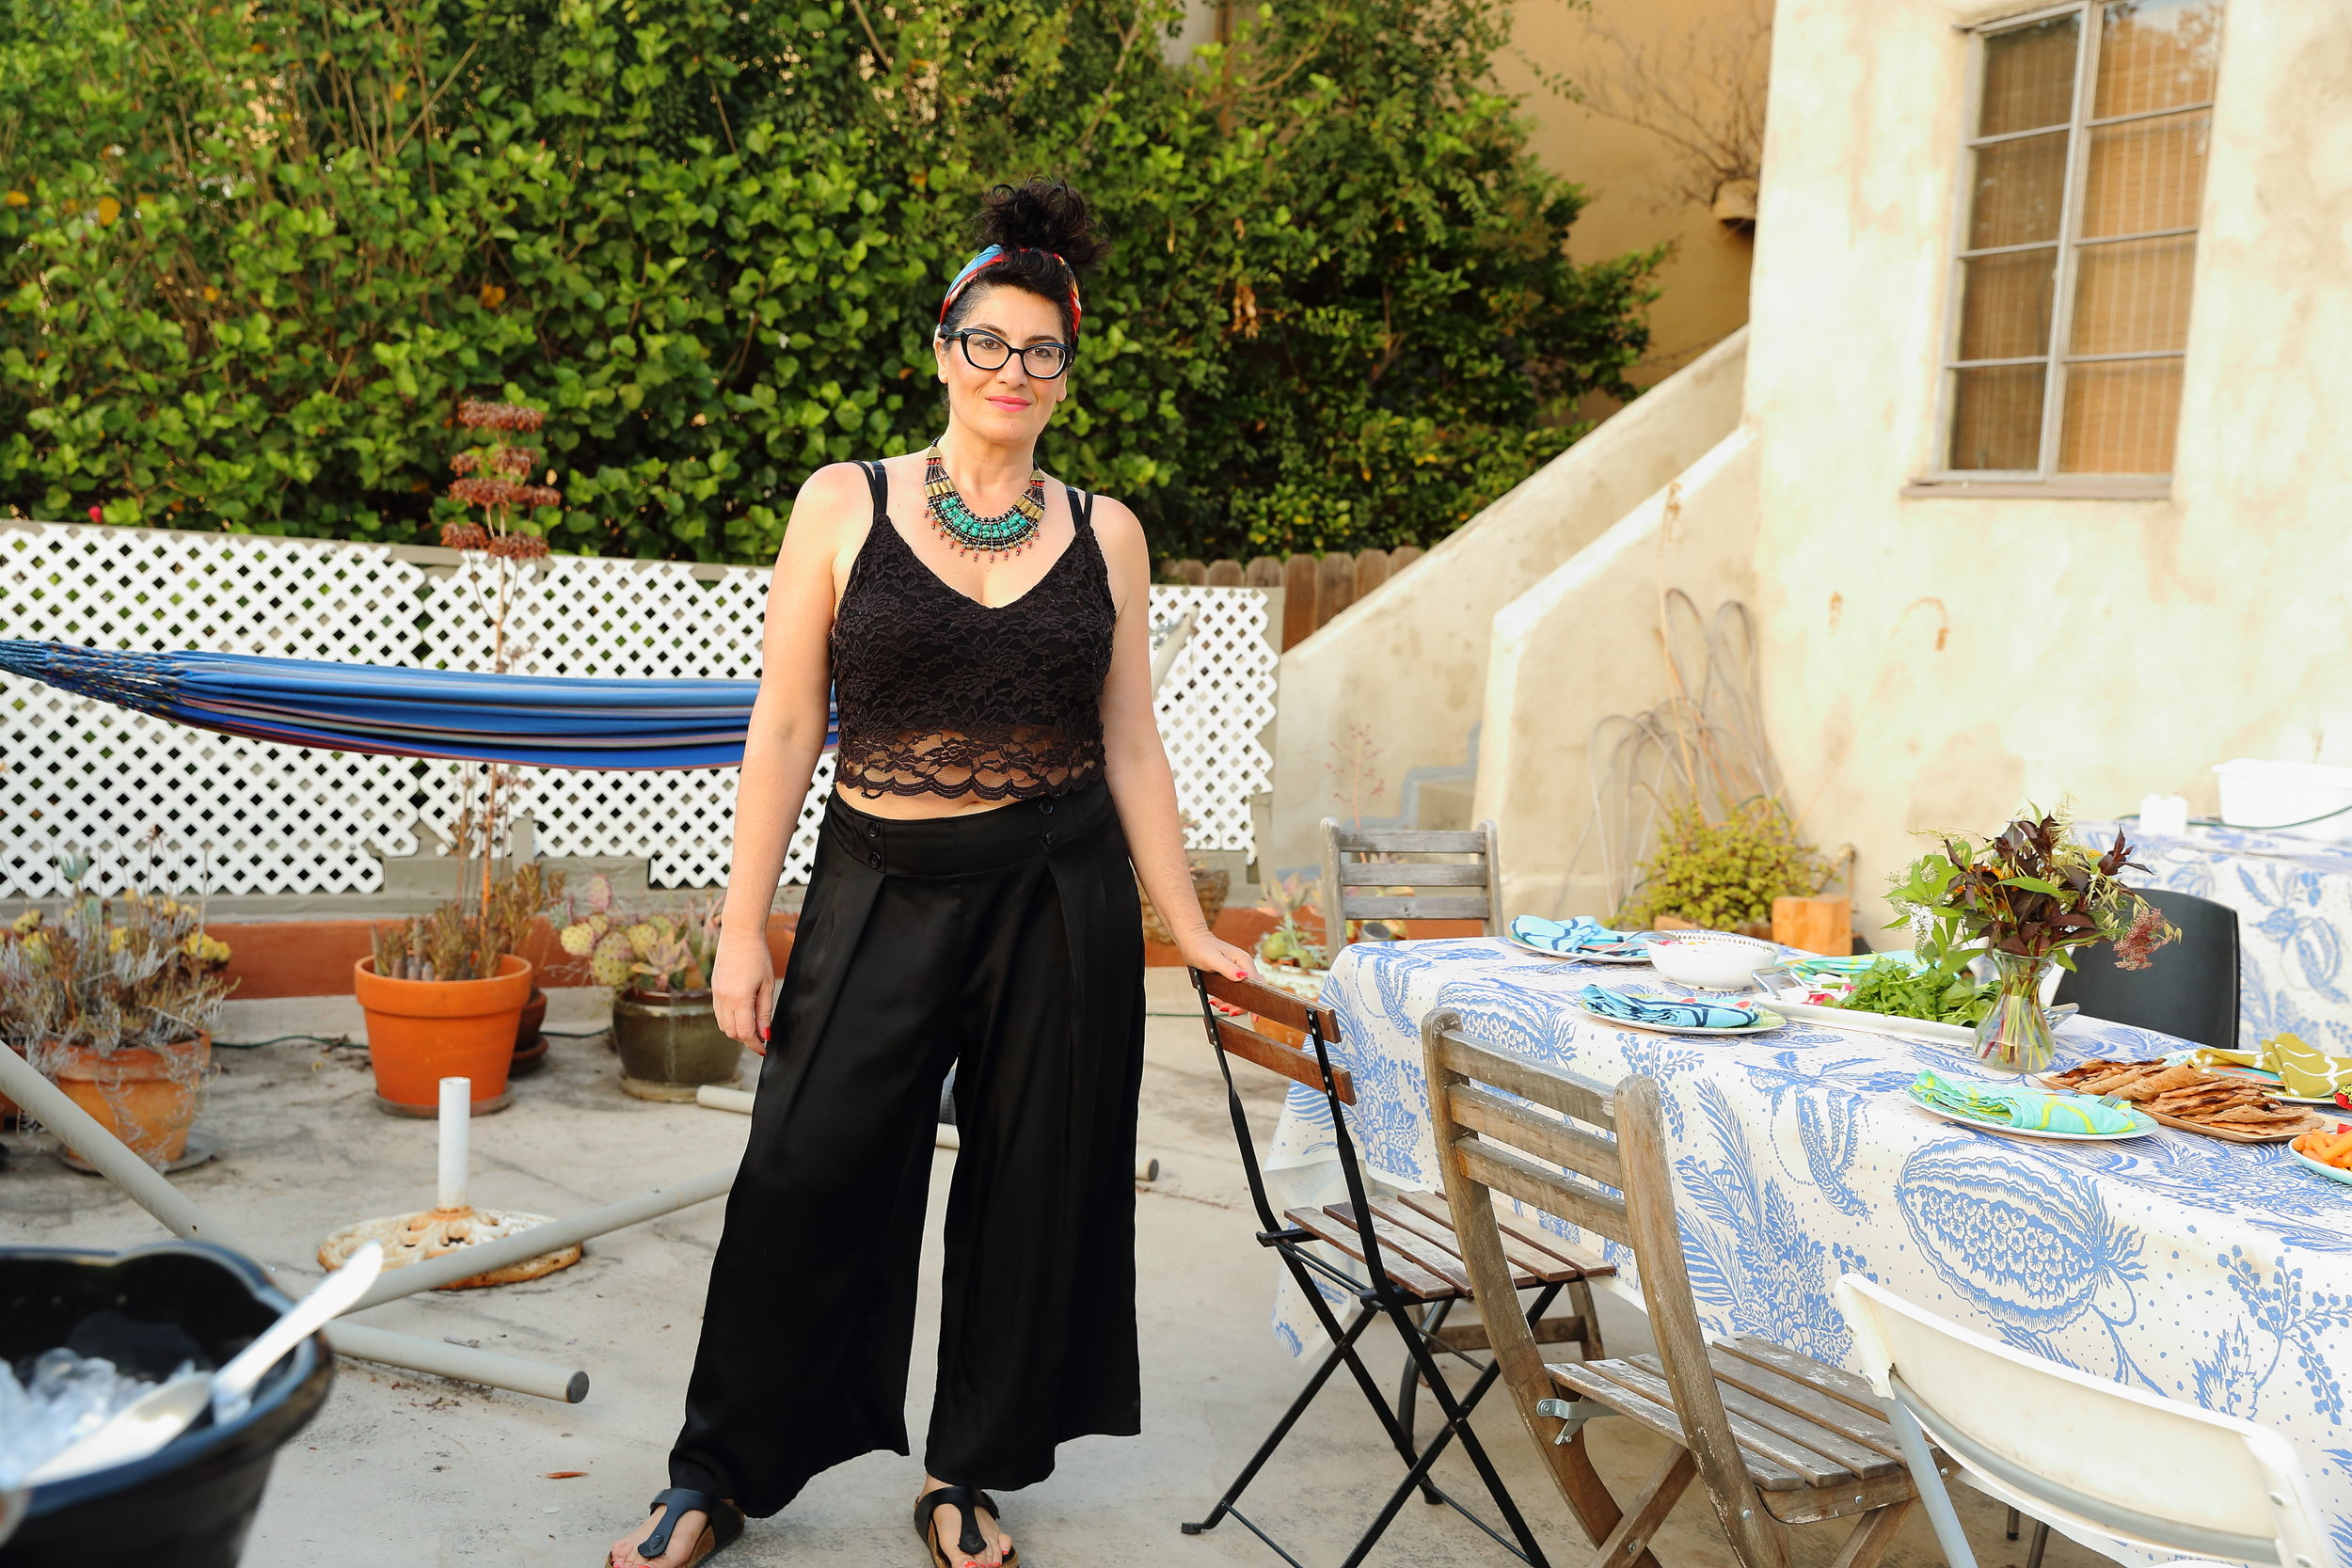 A photo of me taken before guests began arriving on Saturday....the calm before the (awesome) storm of hostessing a dinner party!  Photo credit:   Tina June